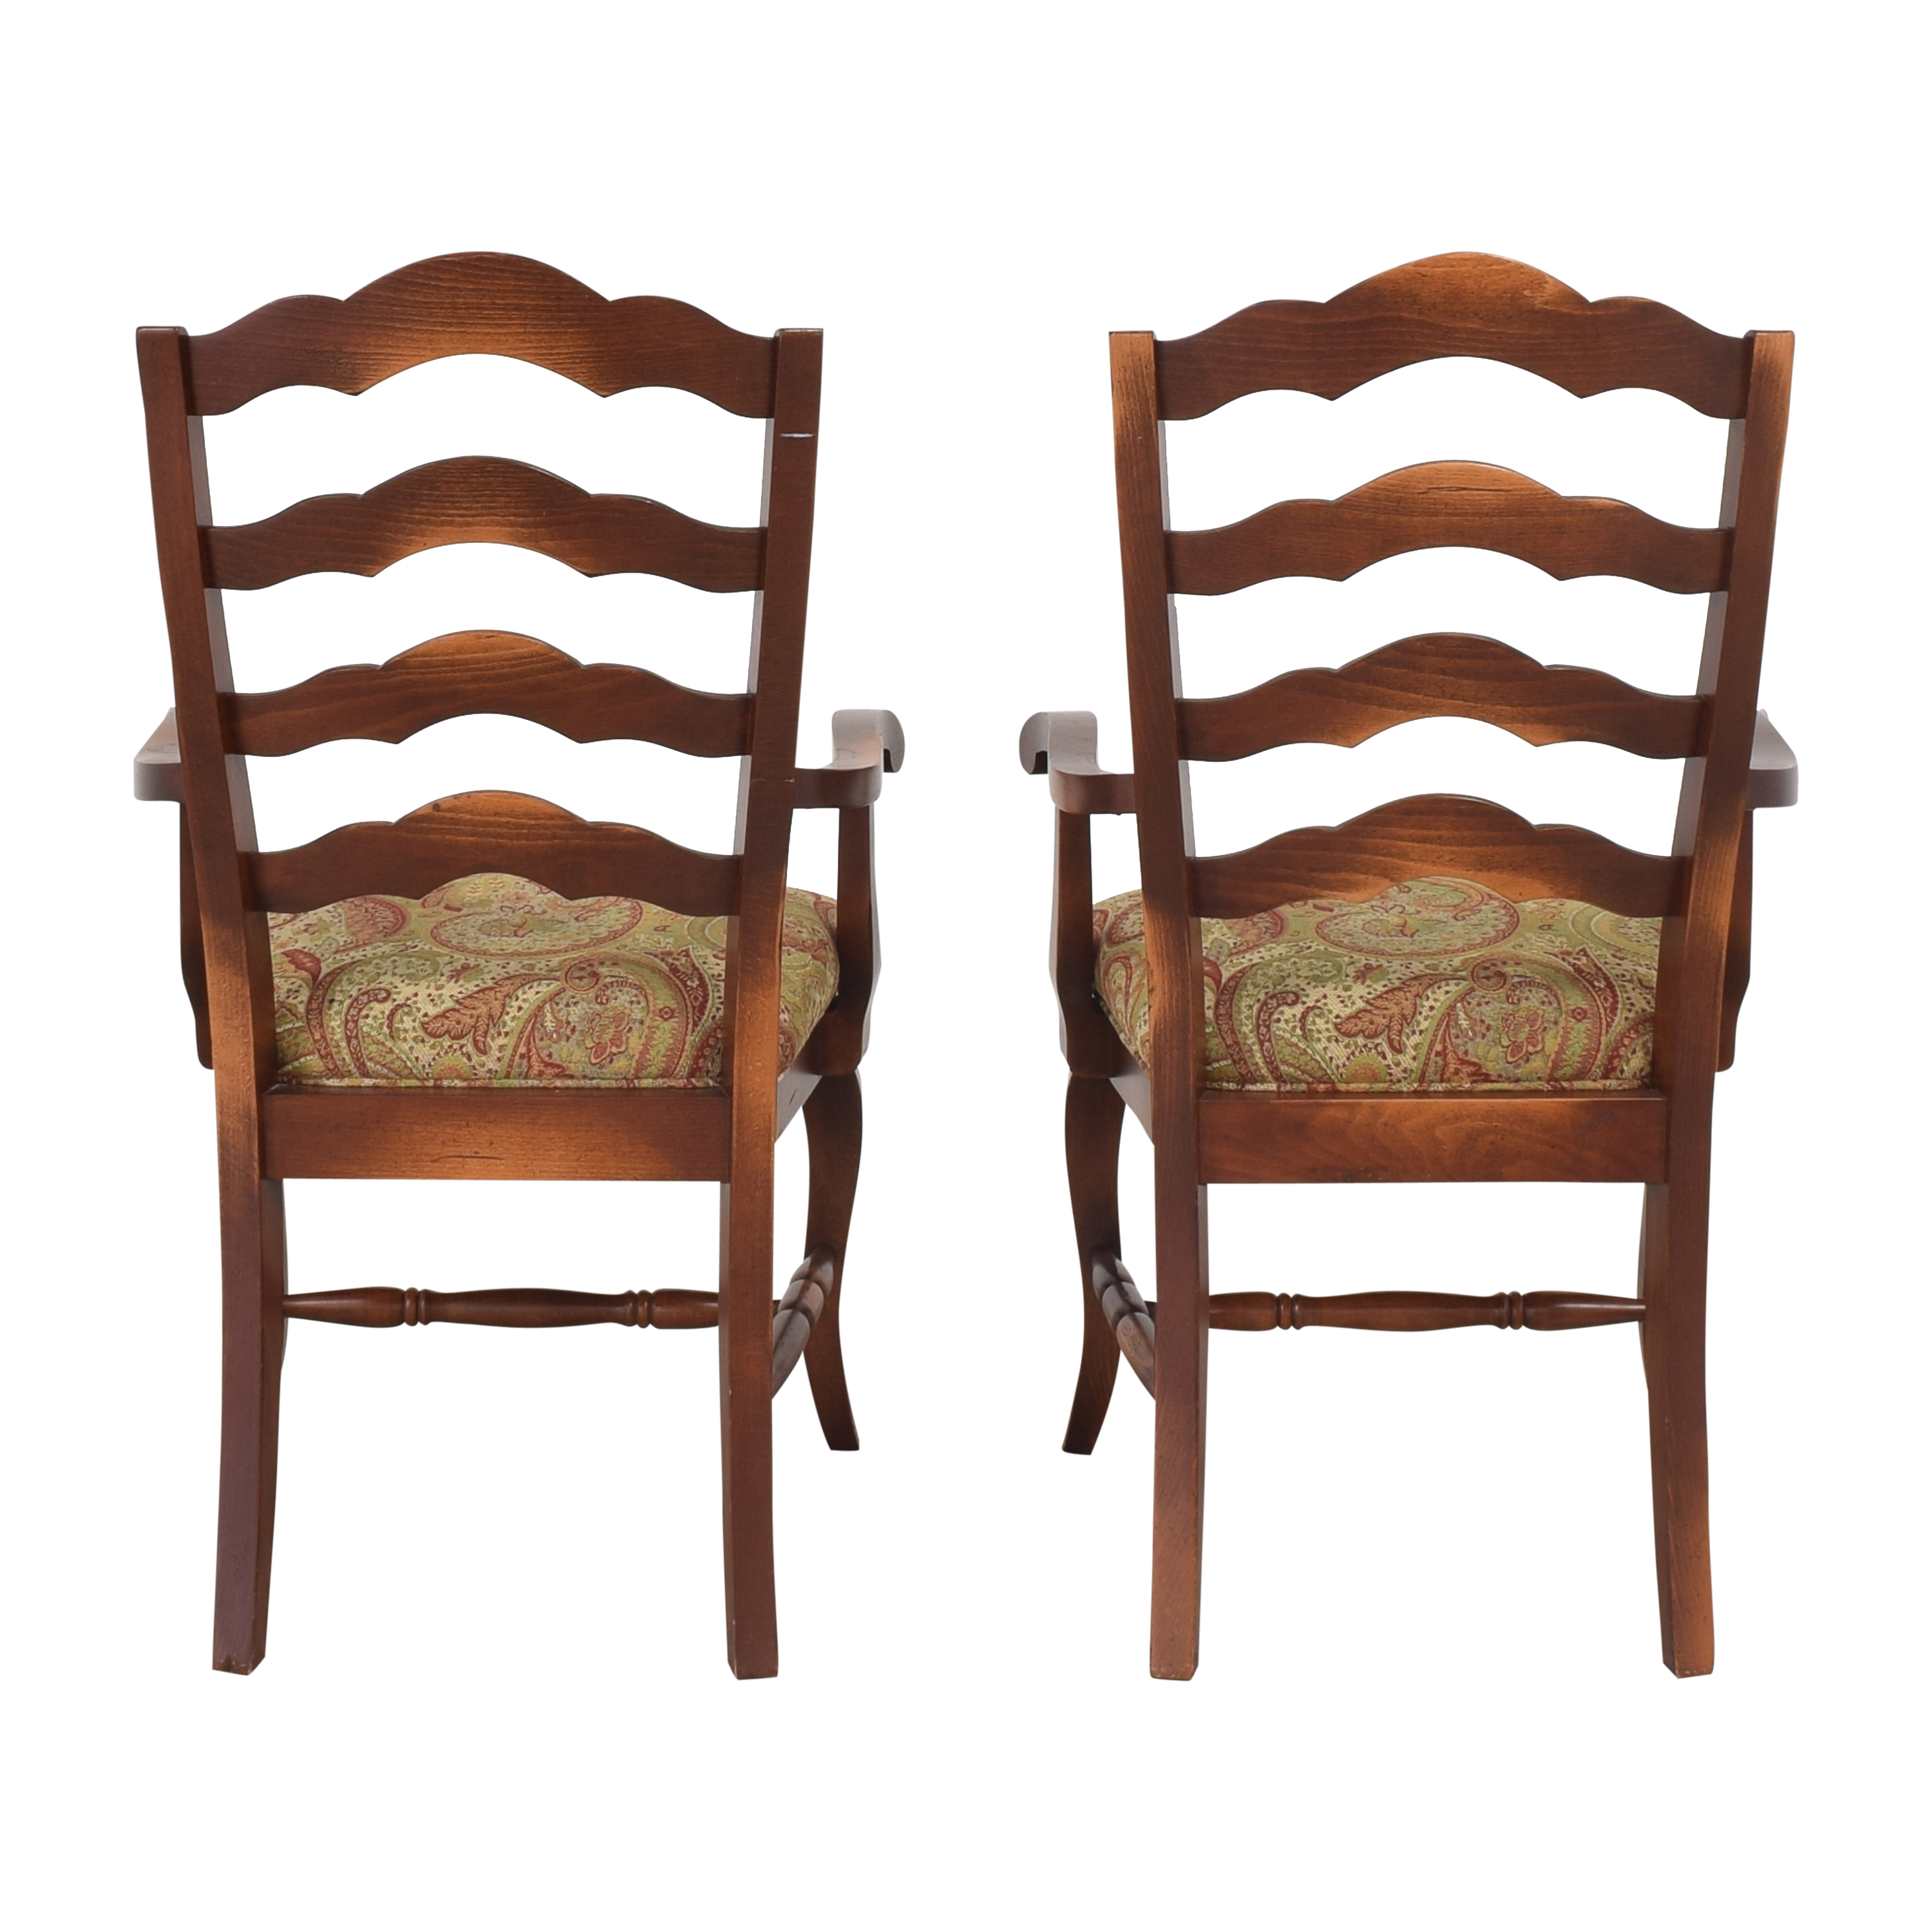 Saloom Saloom Model 35 Upholstered Dining Arm Chairs